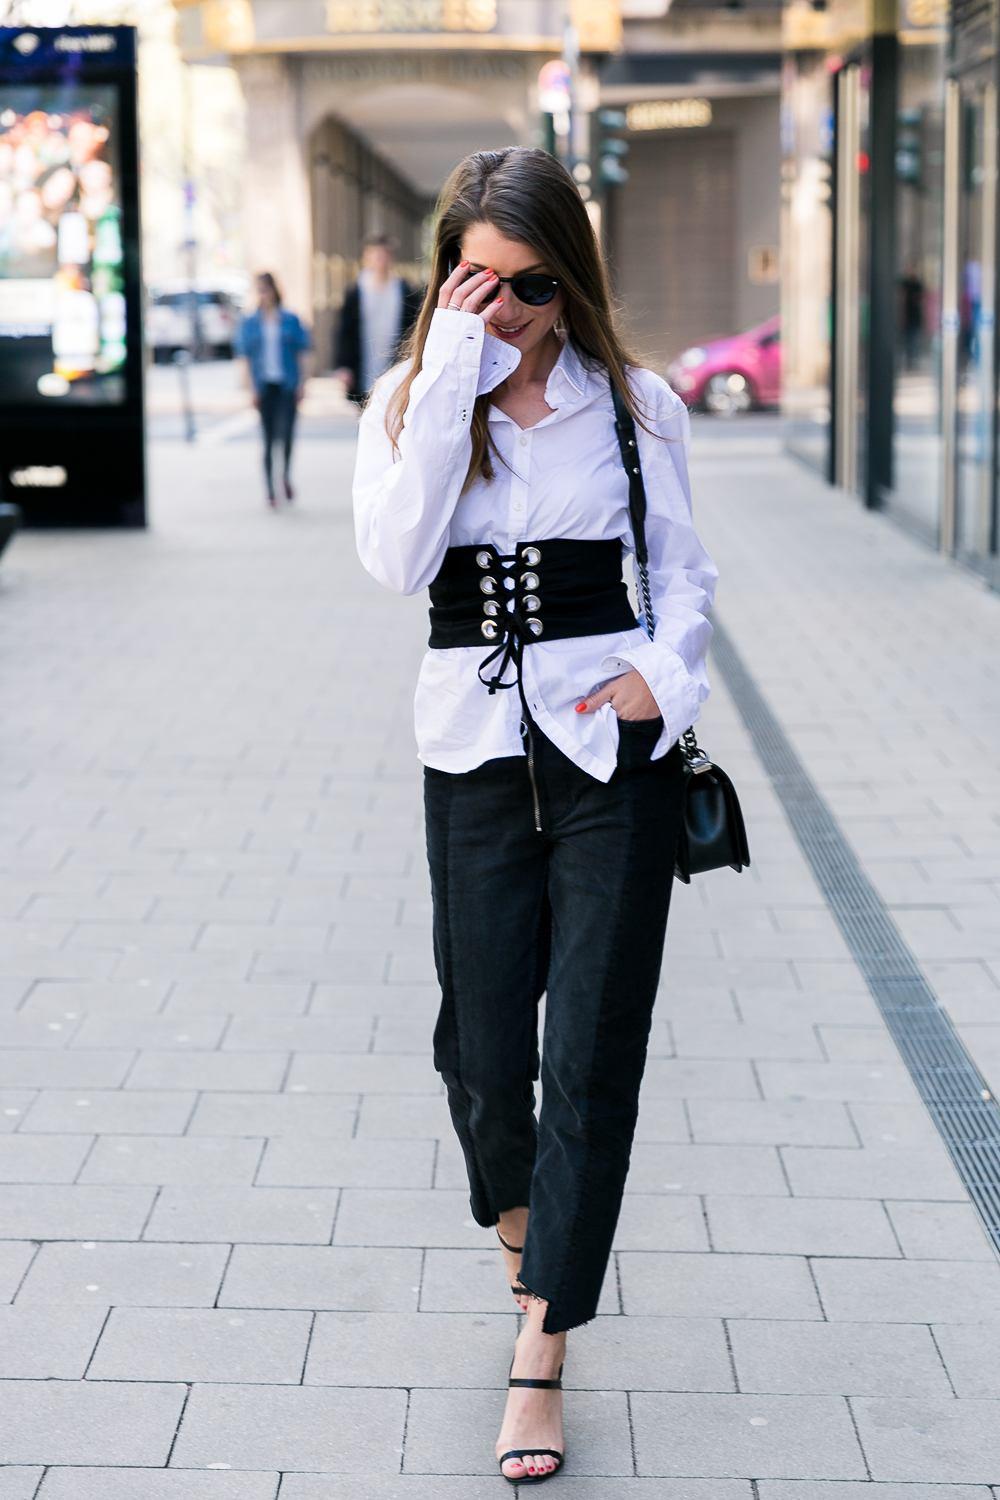 Corset & Two-Tone Jeans